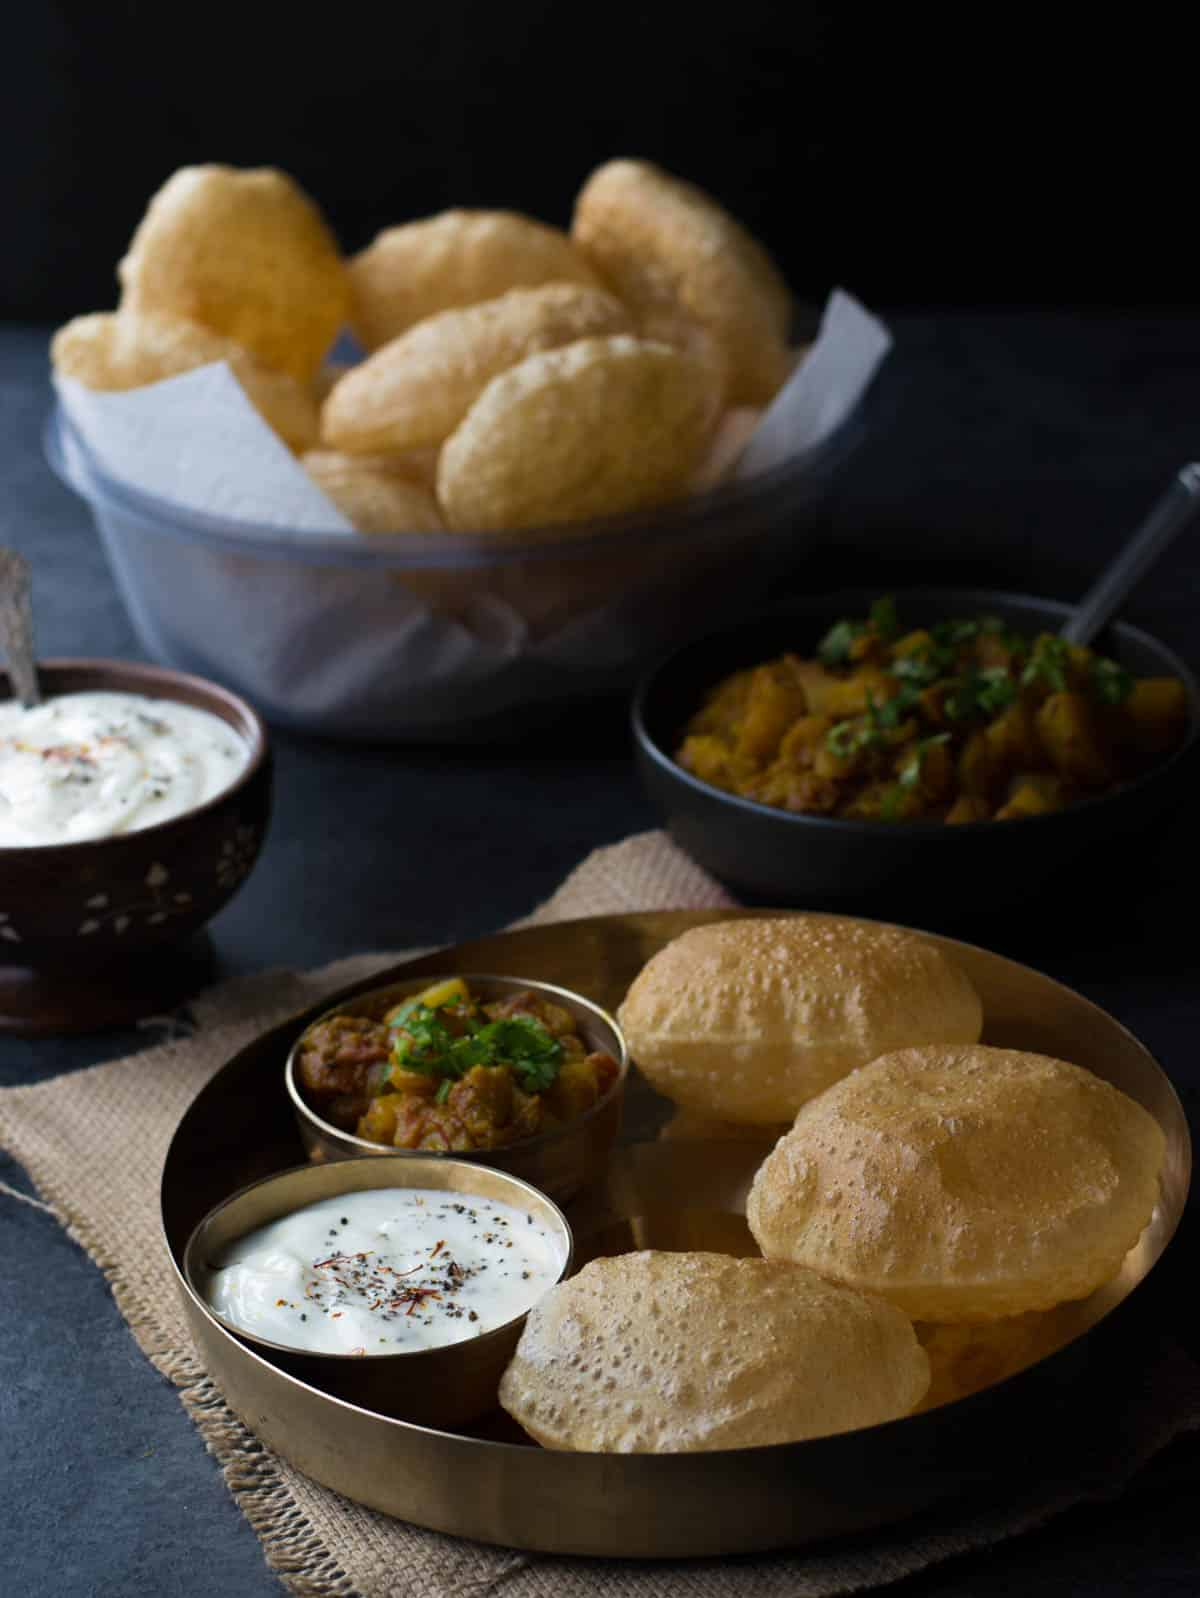 Poori, Shrikhand and Potato vegetable dish served in a golden plate.